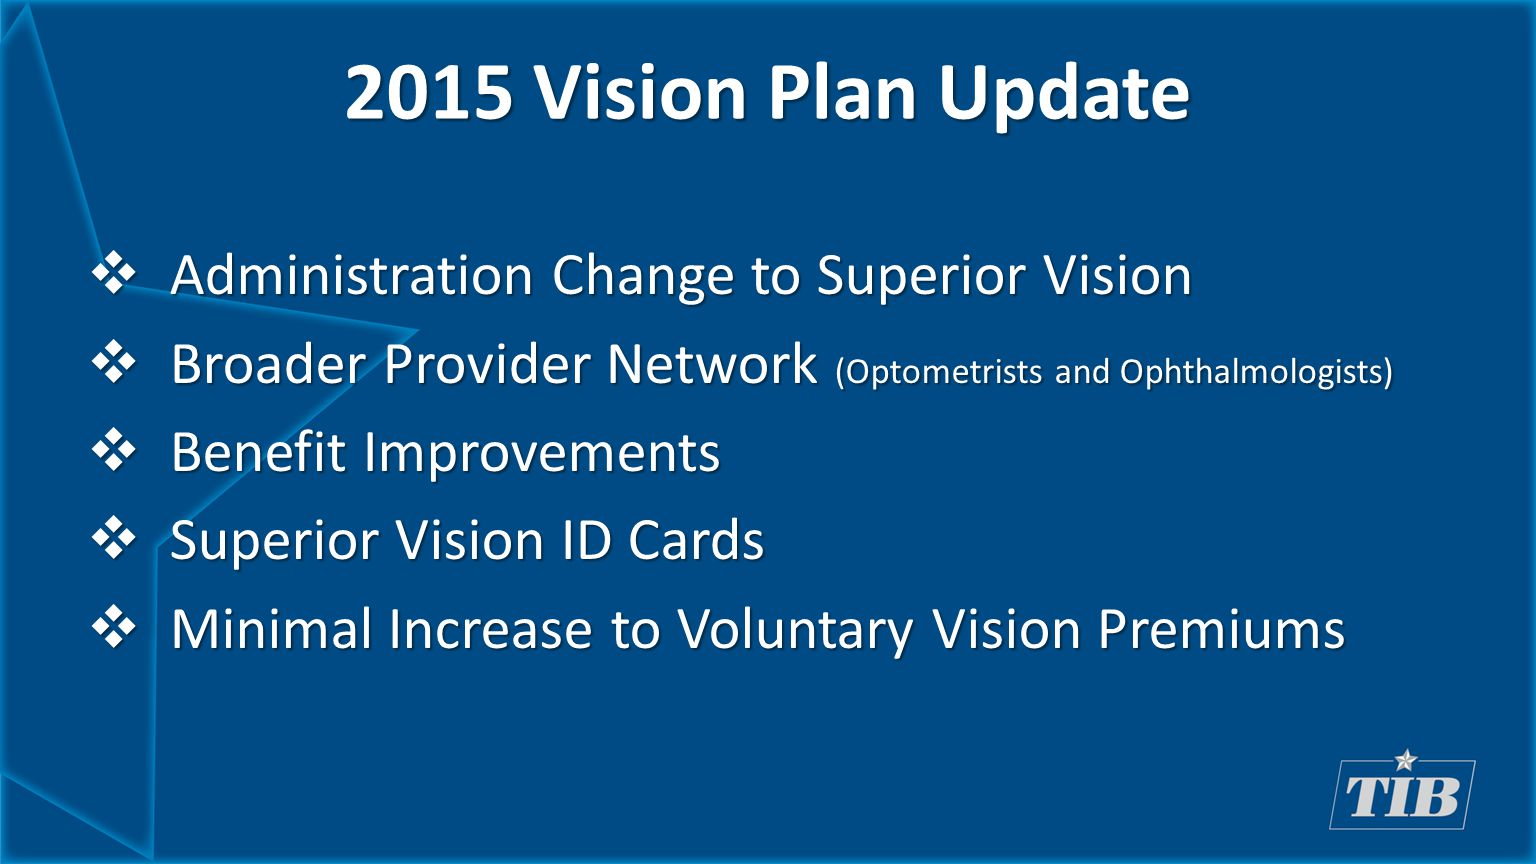 2015 Vision Plan Update  Administration Change to Superior Vision  Broader Provider Network (Optometrists and Ophthalmologists)  Benefit Improvements  Superior Vision ID Cards  Minimal Increase to Voluntary Vision Premiums